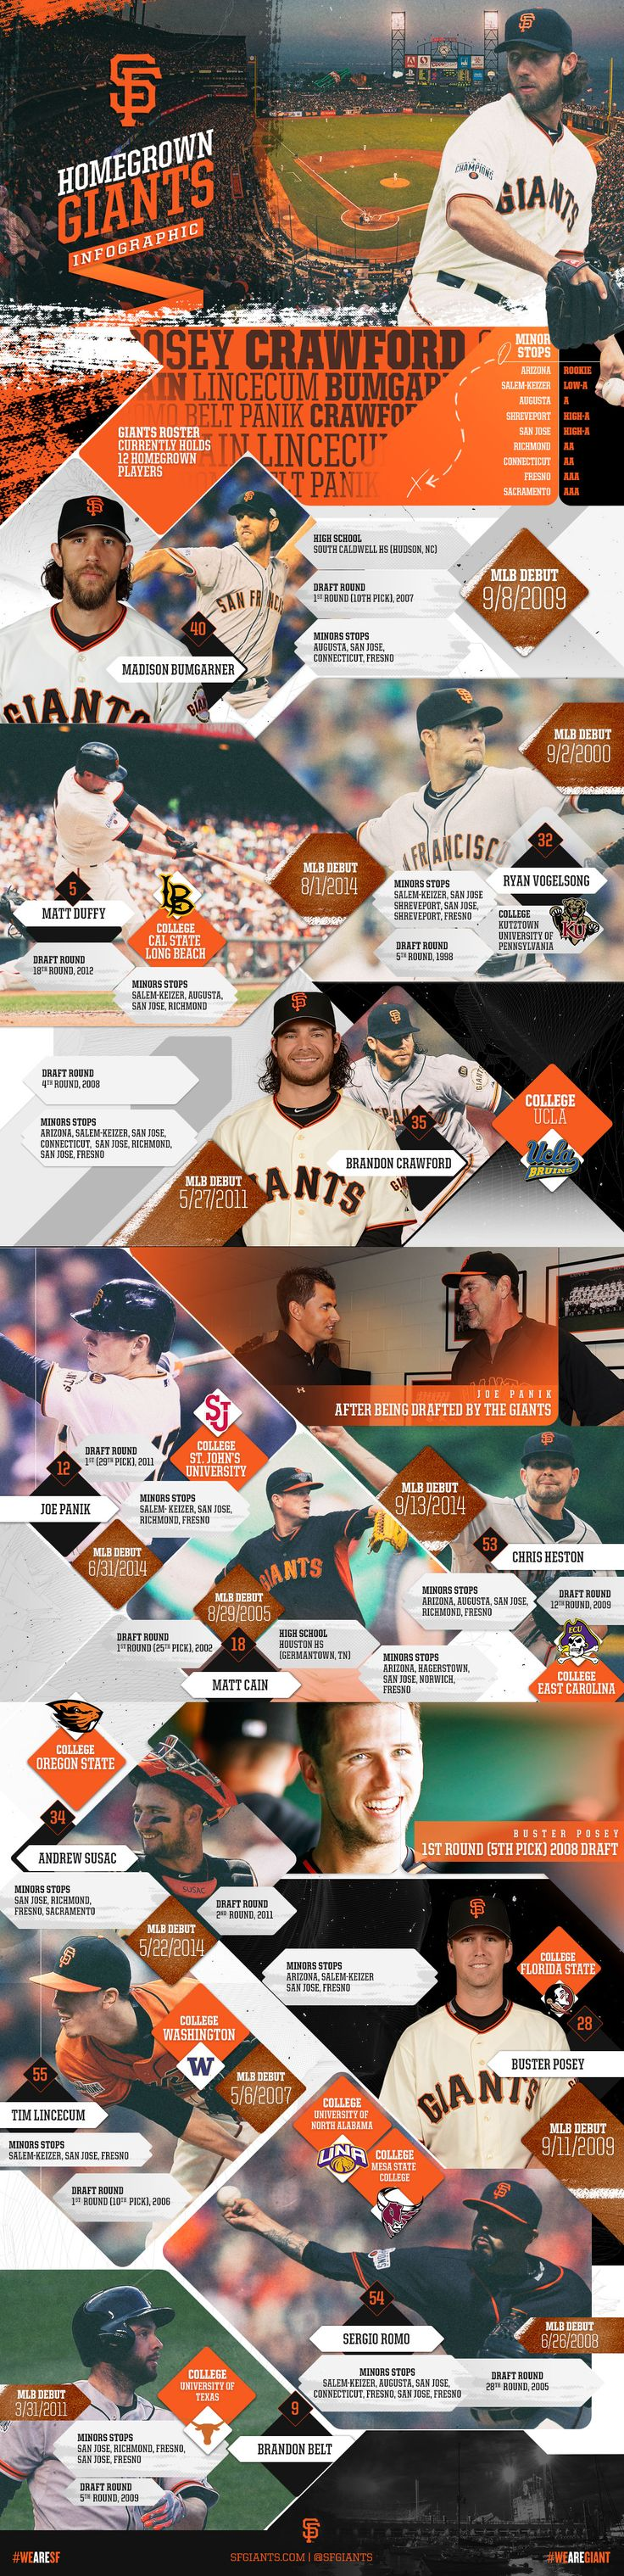 SF Homegrown Giants - watch the 2015 MLB Draft: June 8-10 on sfgiants.com